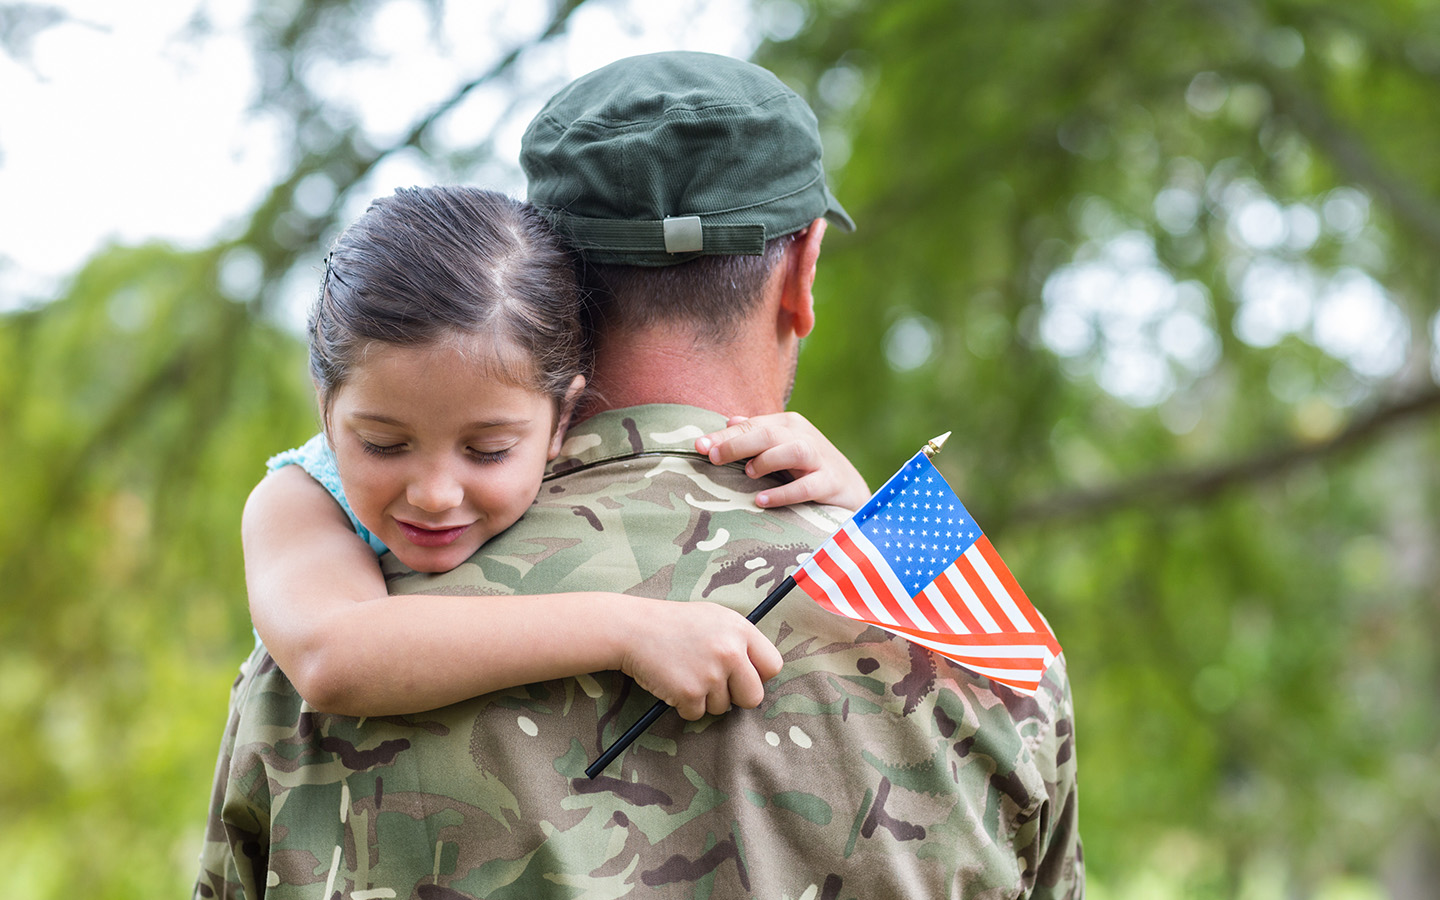 Veteran dad with young child